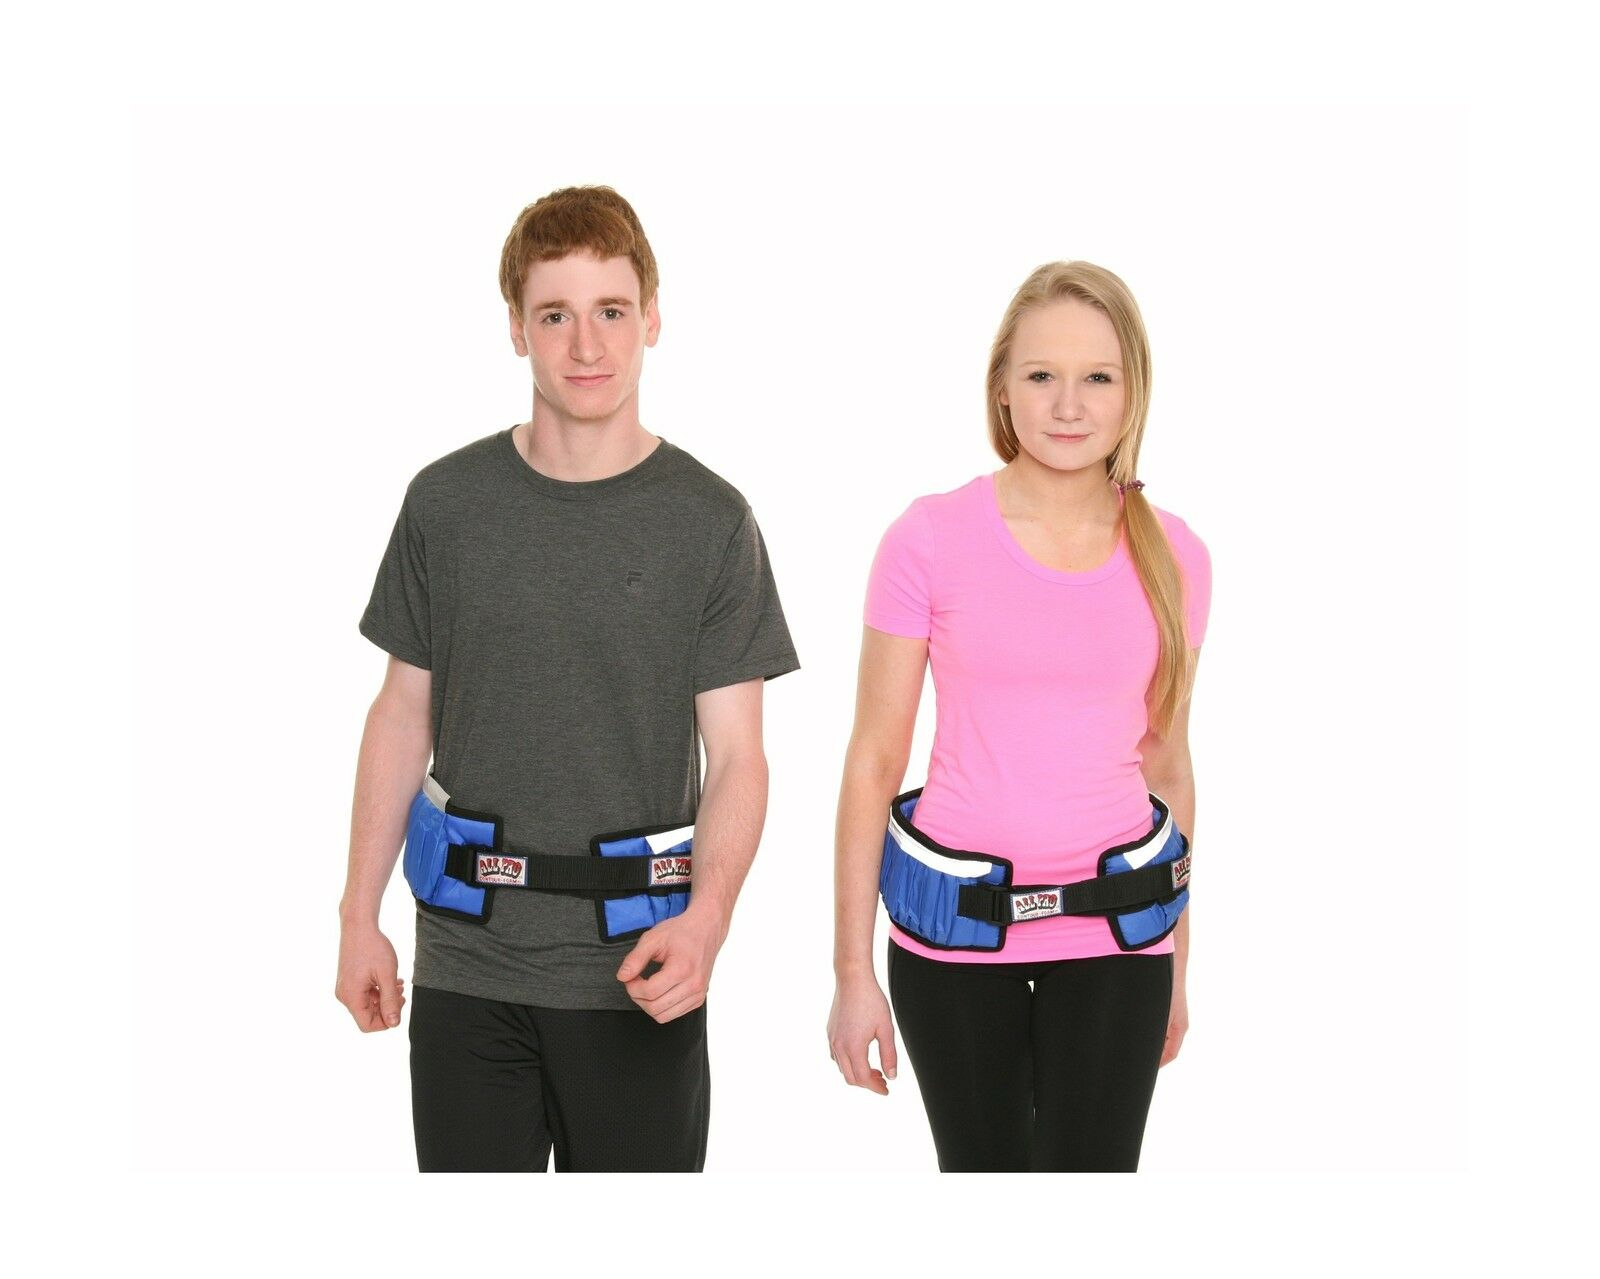 All Pro Weight Adjustable Power  Stride Exercise Belt 10-Pound Free Shipping  save on clearance